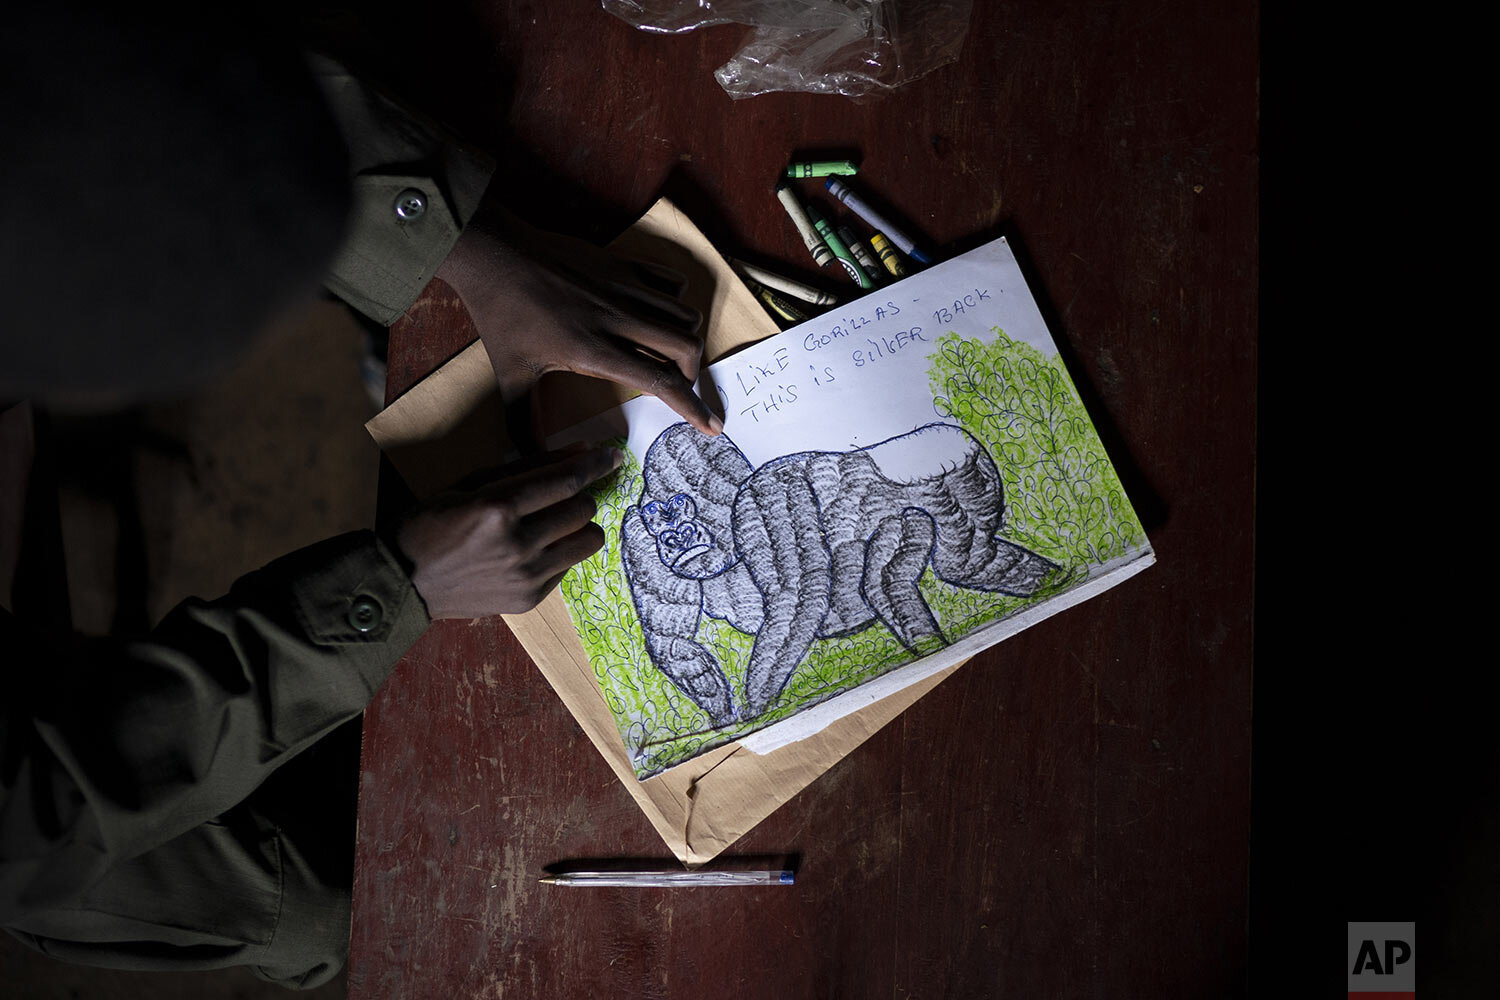 Jean Claude Masengesho, poses for a photo holding one of his many drawings of silverback gorillas. (AP Photo/Felipe Dana)